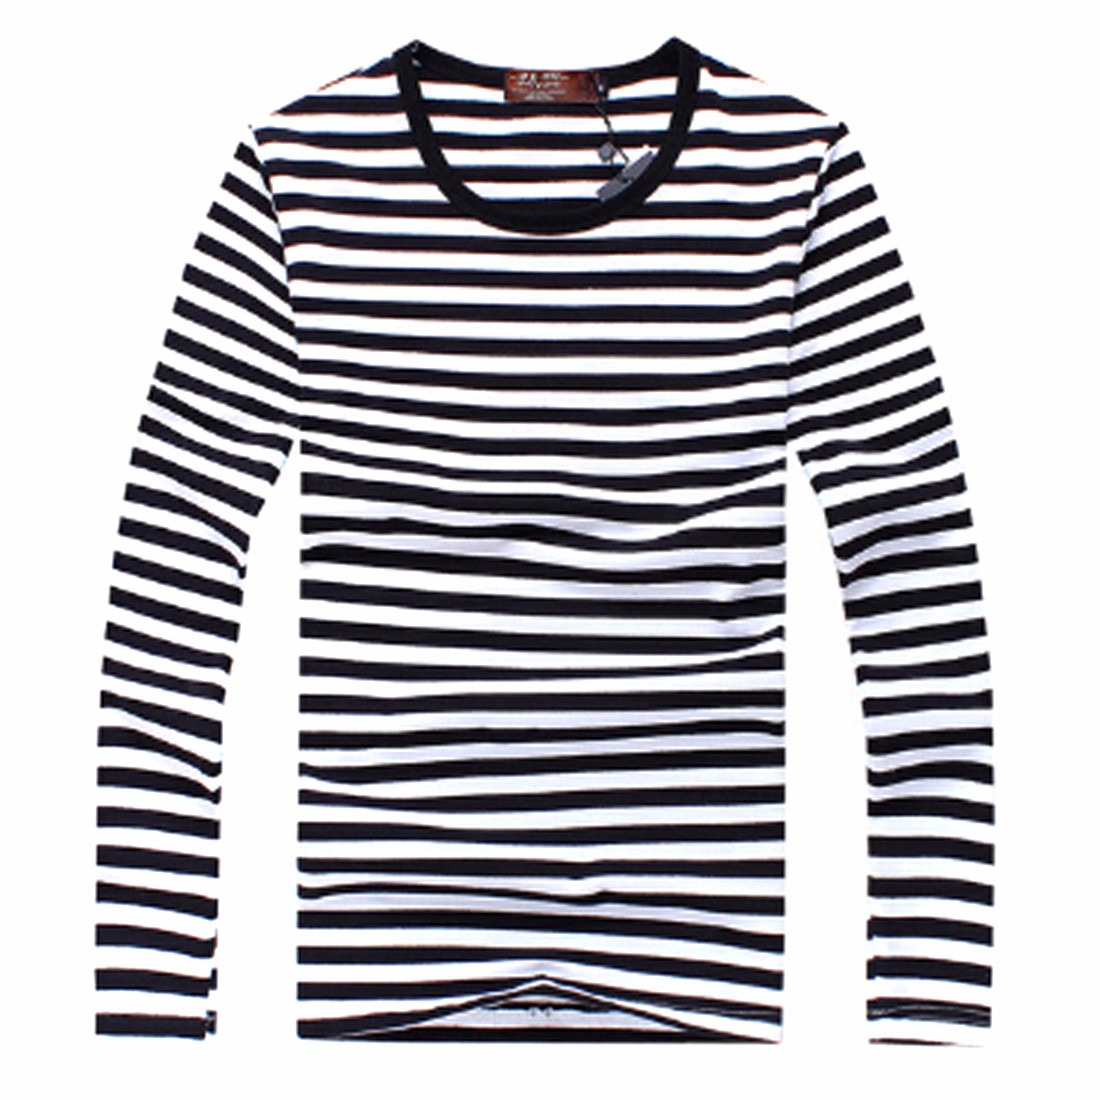 Black and white striped t shirt xxl - Long Striped Top Re Re